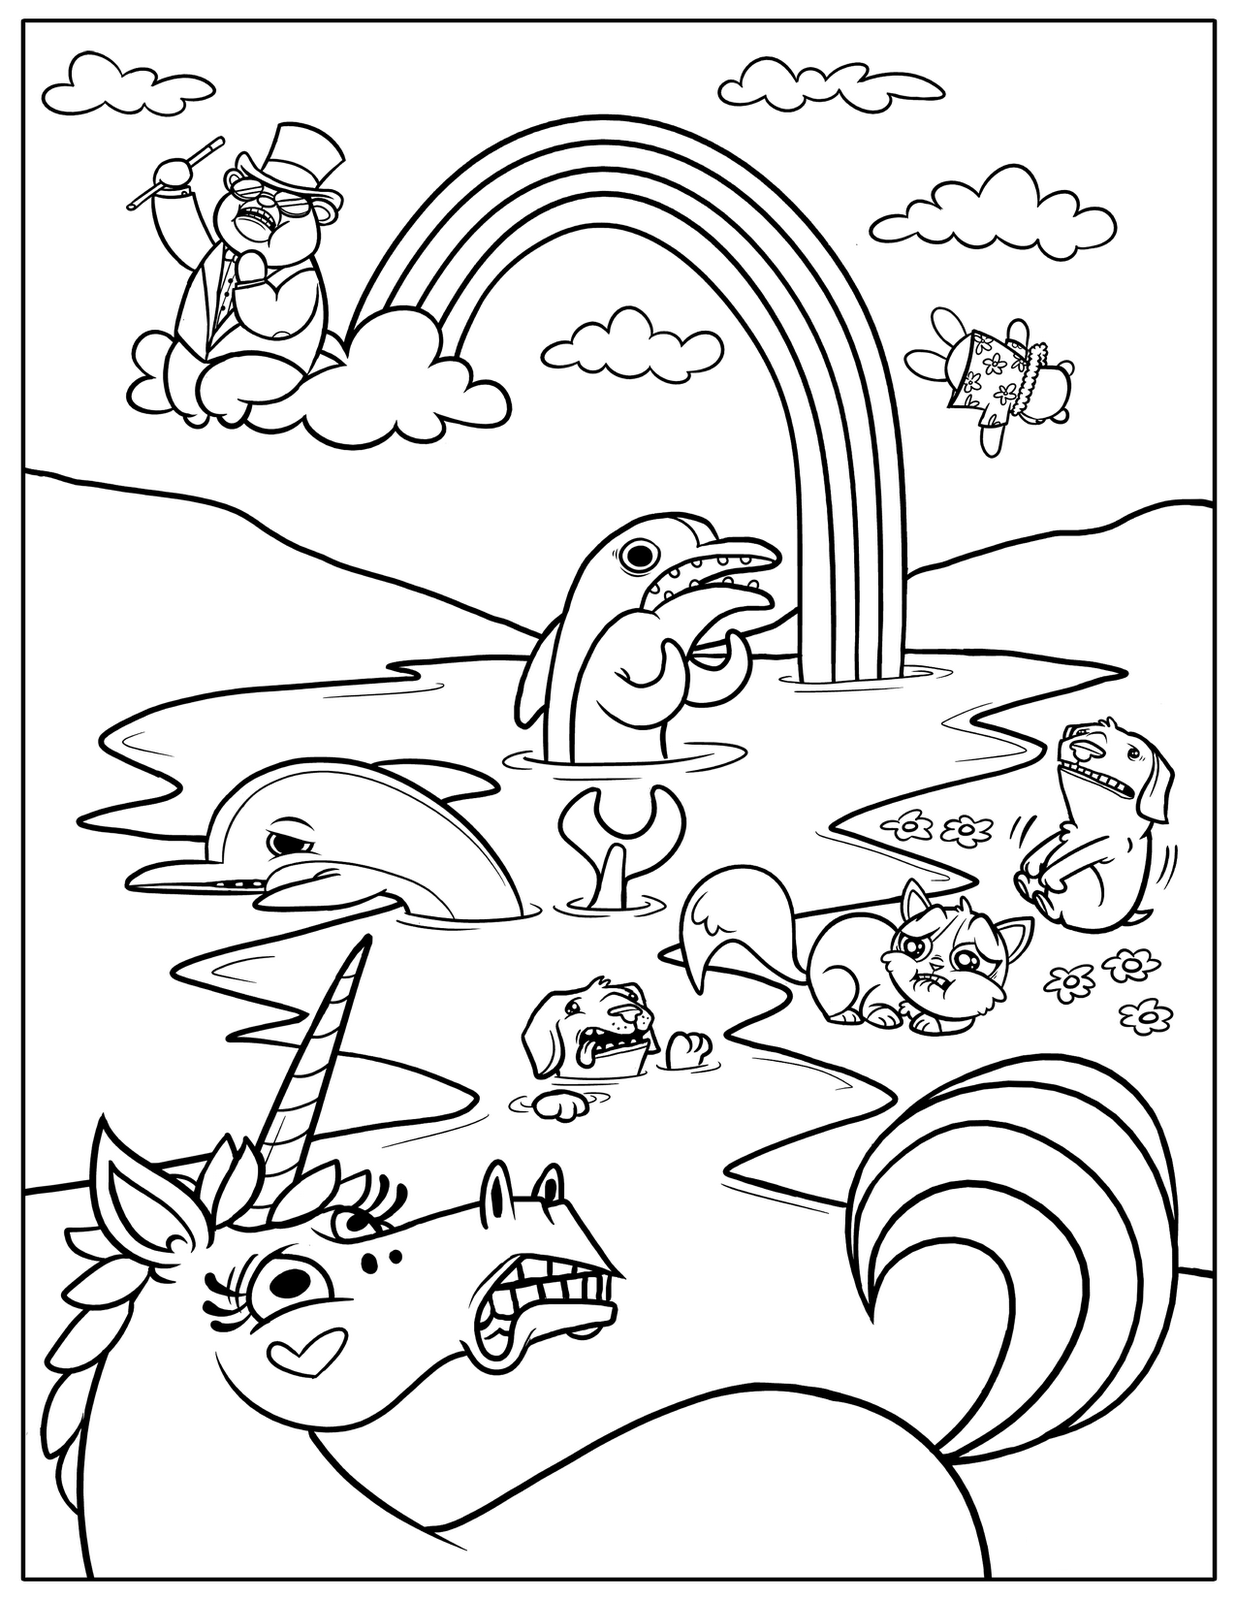 Free printable rainbow coloring pages for kids for Photo to coloring page